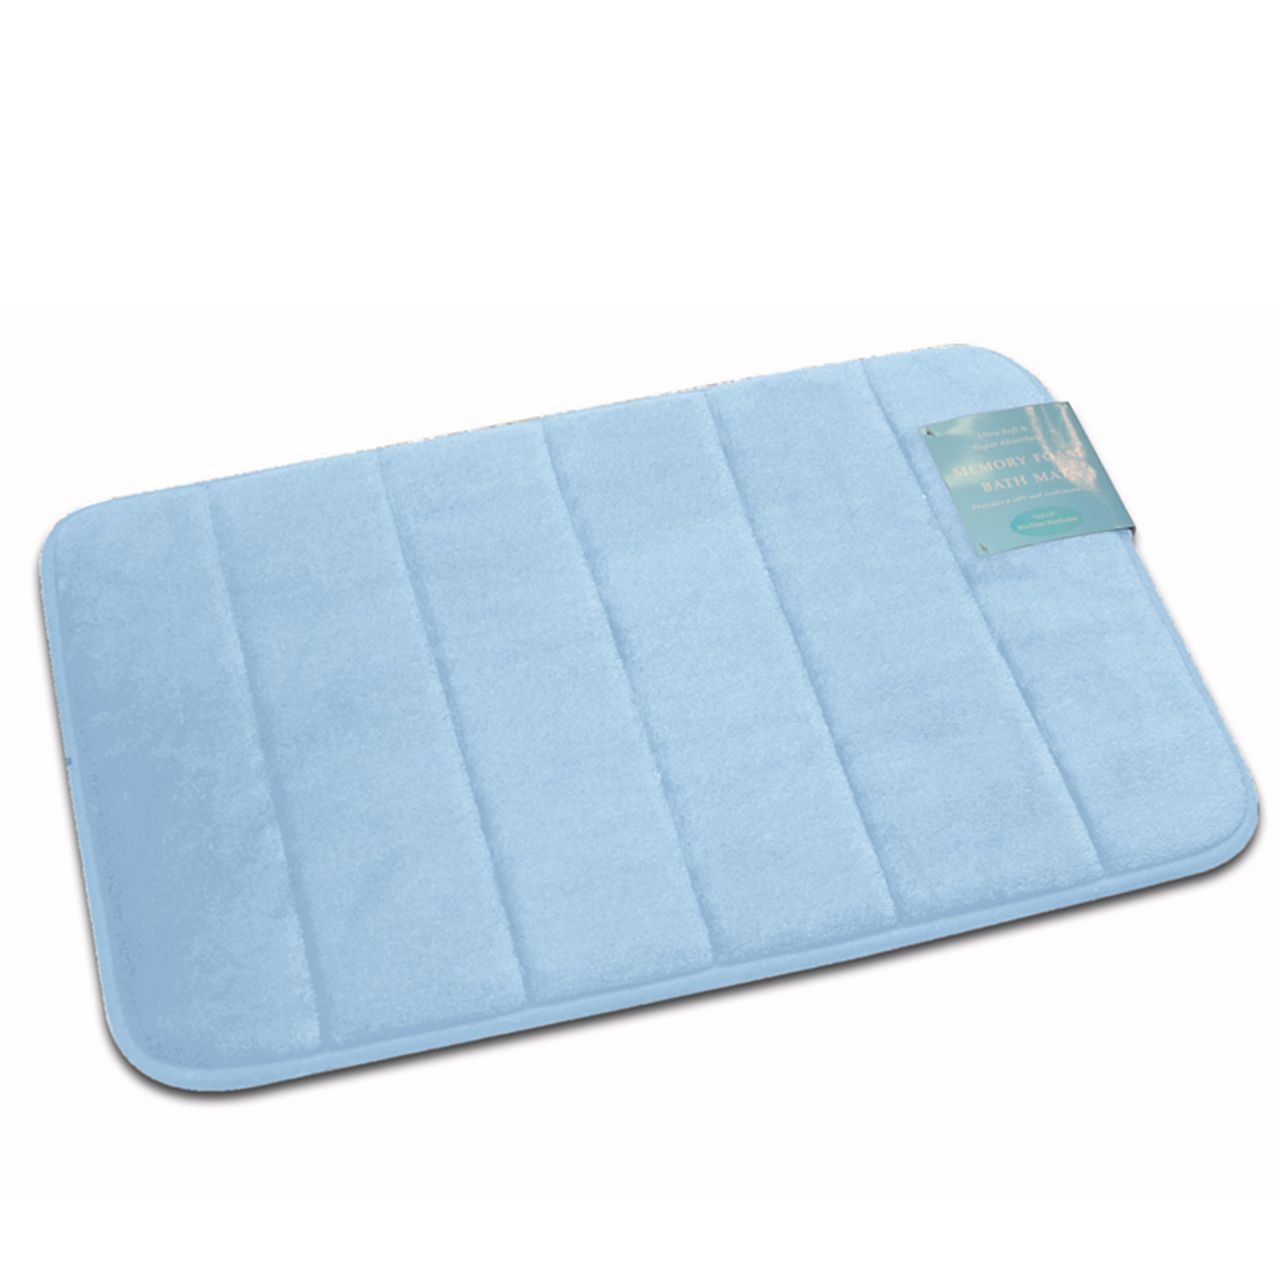 Memory Foam Bath Mat Foam Ultra Plush Rug Non Slip Back 16x24 In